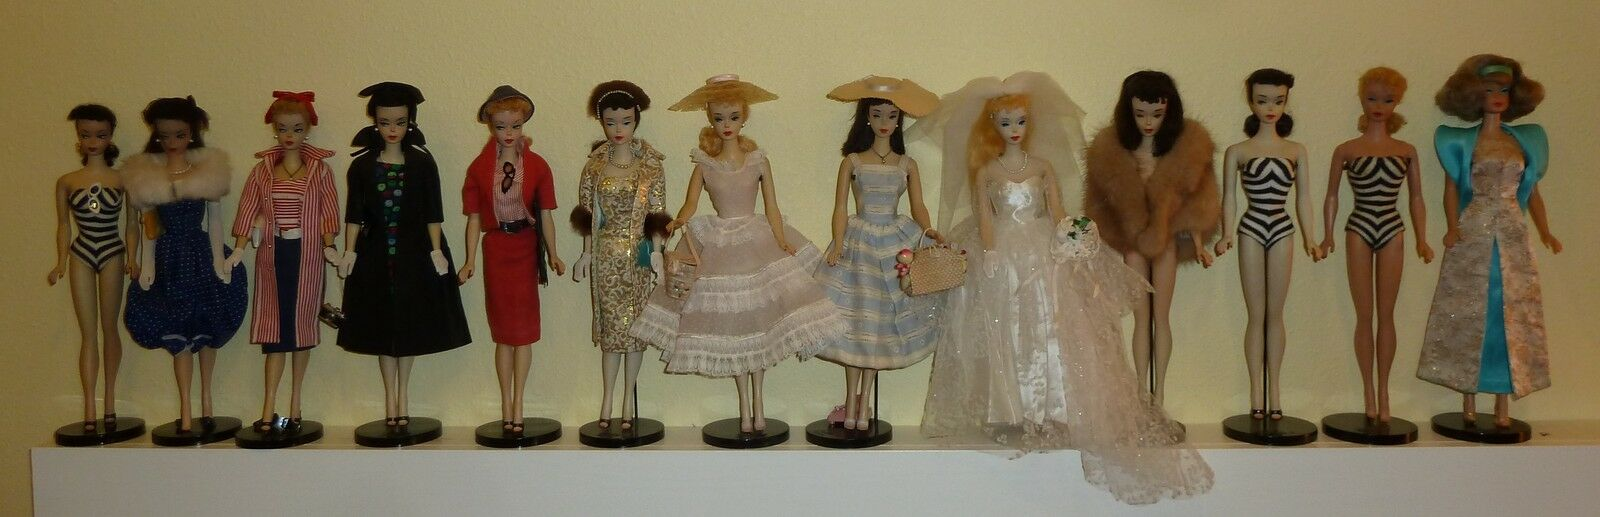 Jen's Online Consignments & Barbies